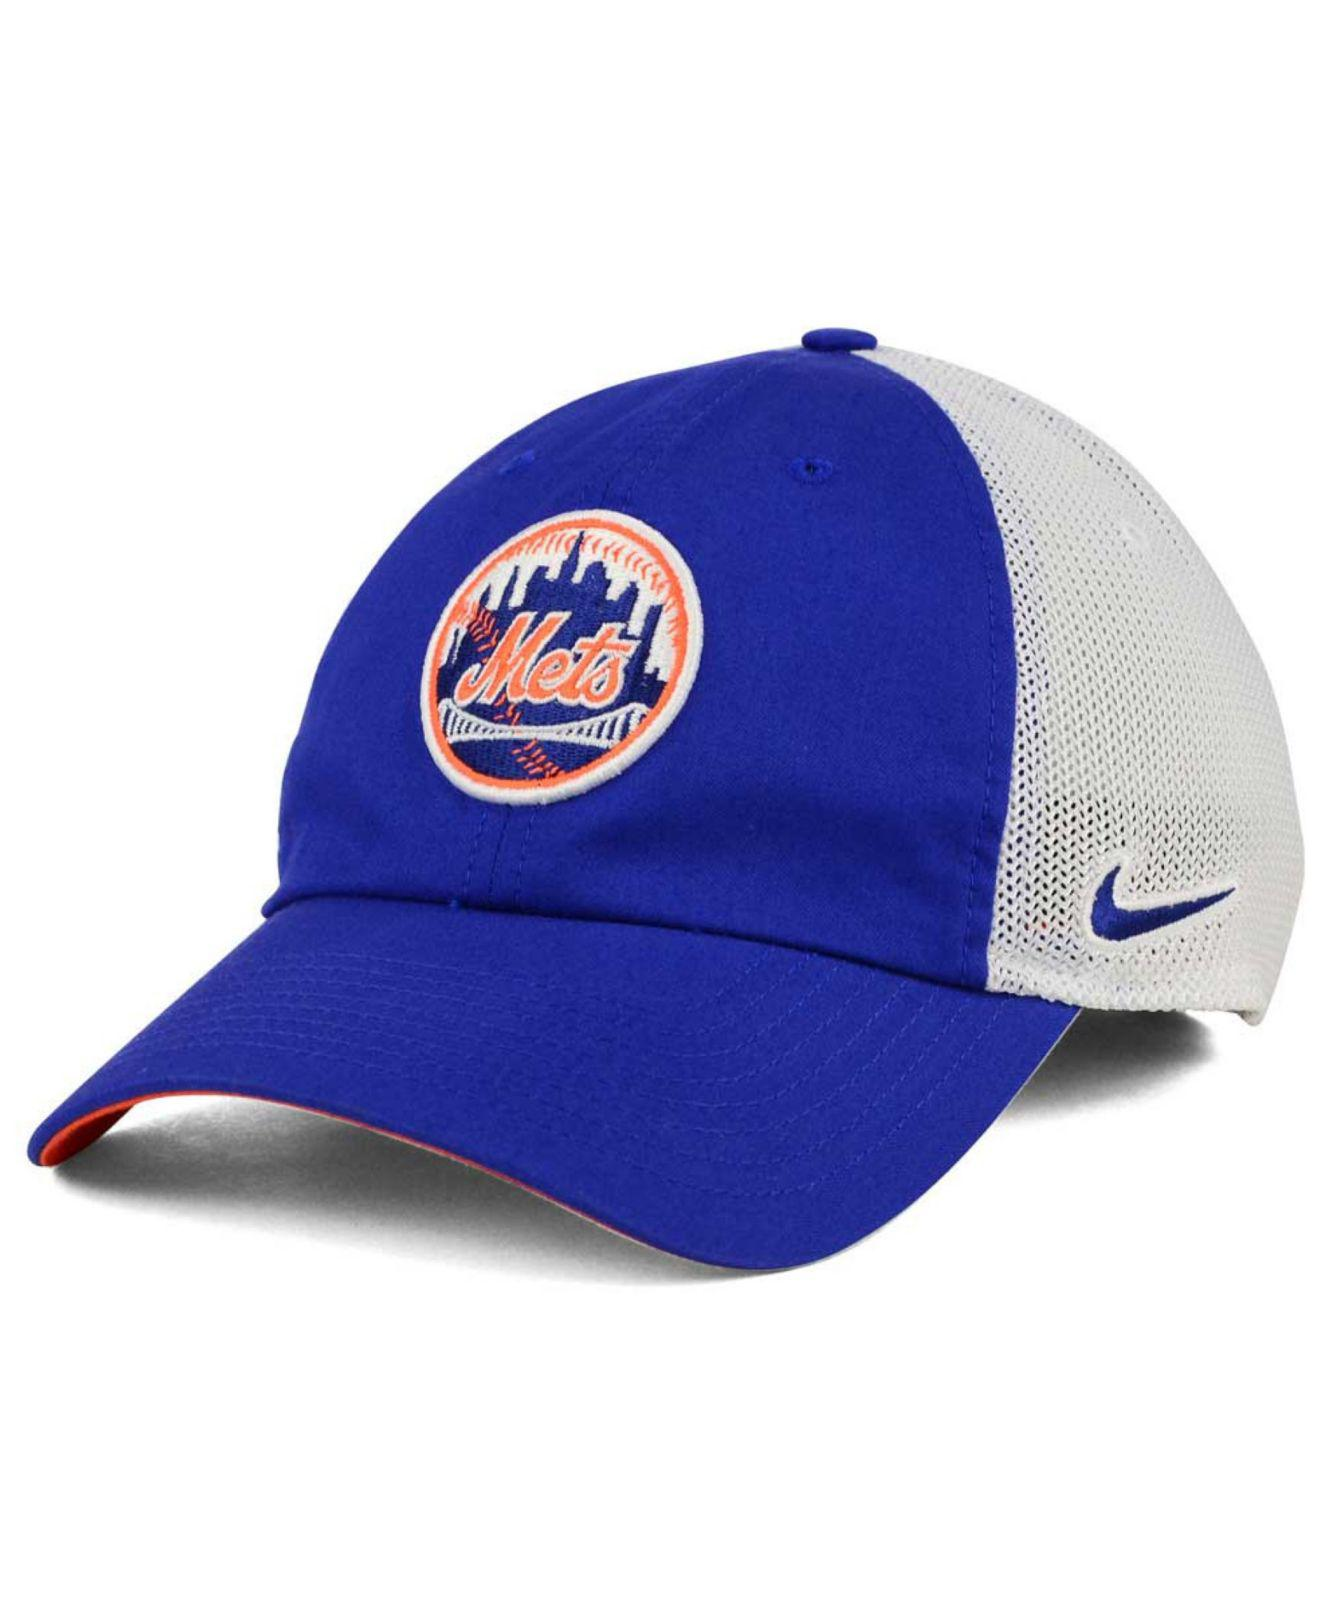 f93559ab Nike New York Mets Dri-fit Mesh Swoosh Adjustable Cap in Blue for ...